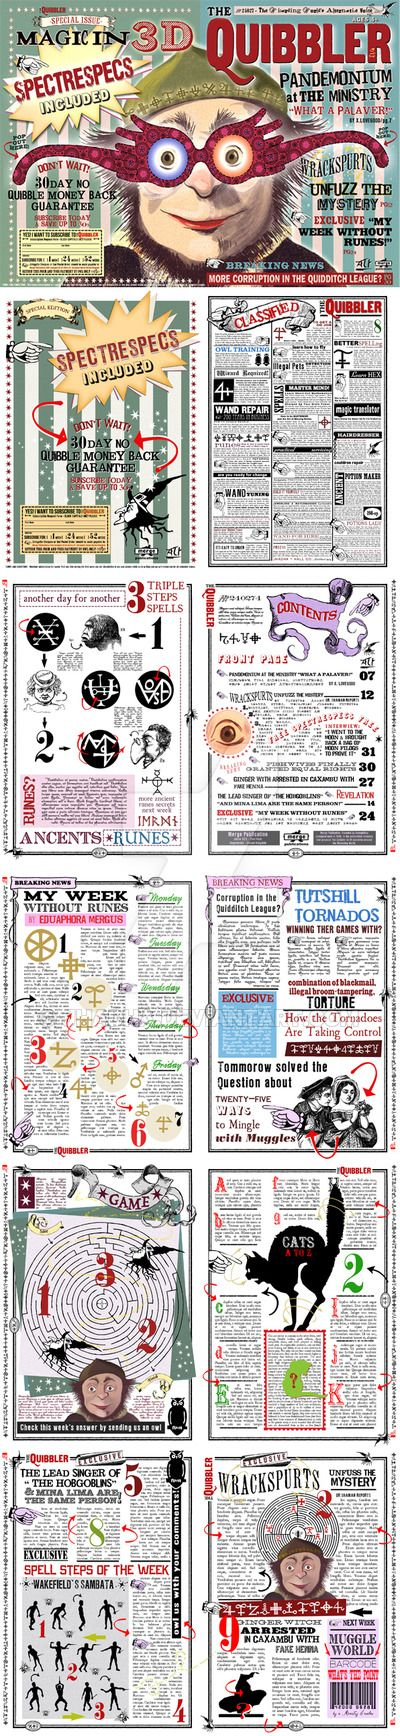 Quibbler Spectrespecs Replica Version with pages. by WiwinJer.deviantart.com on @DeviantArt